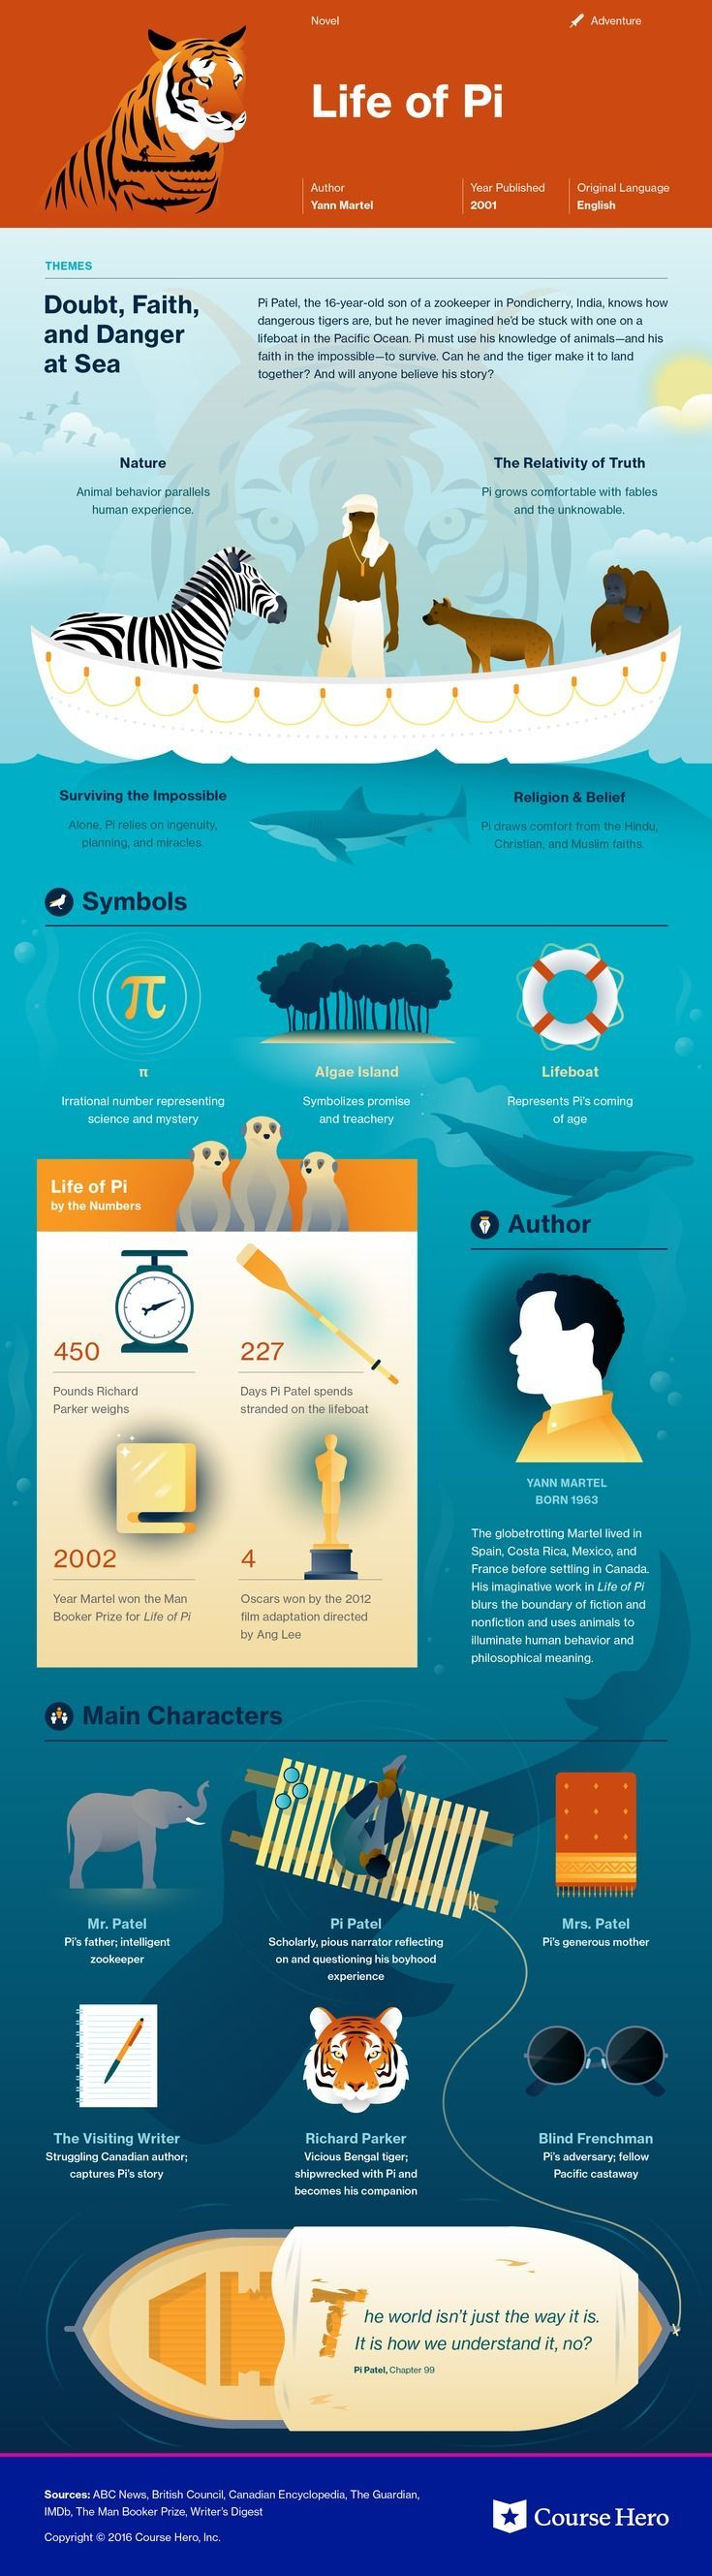 Life of Pi Infographic | Course Hero